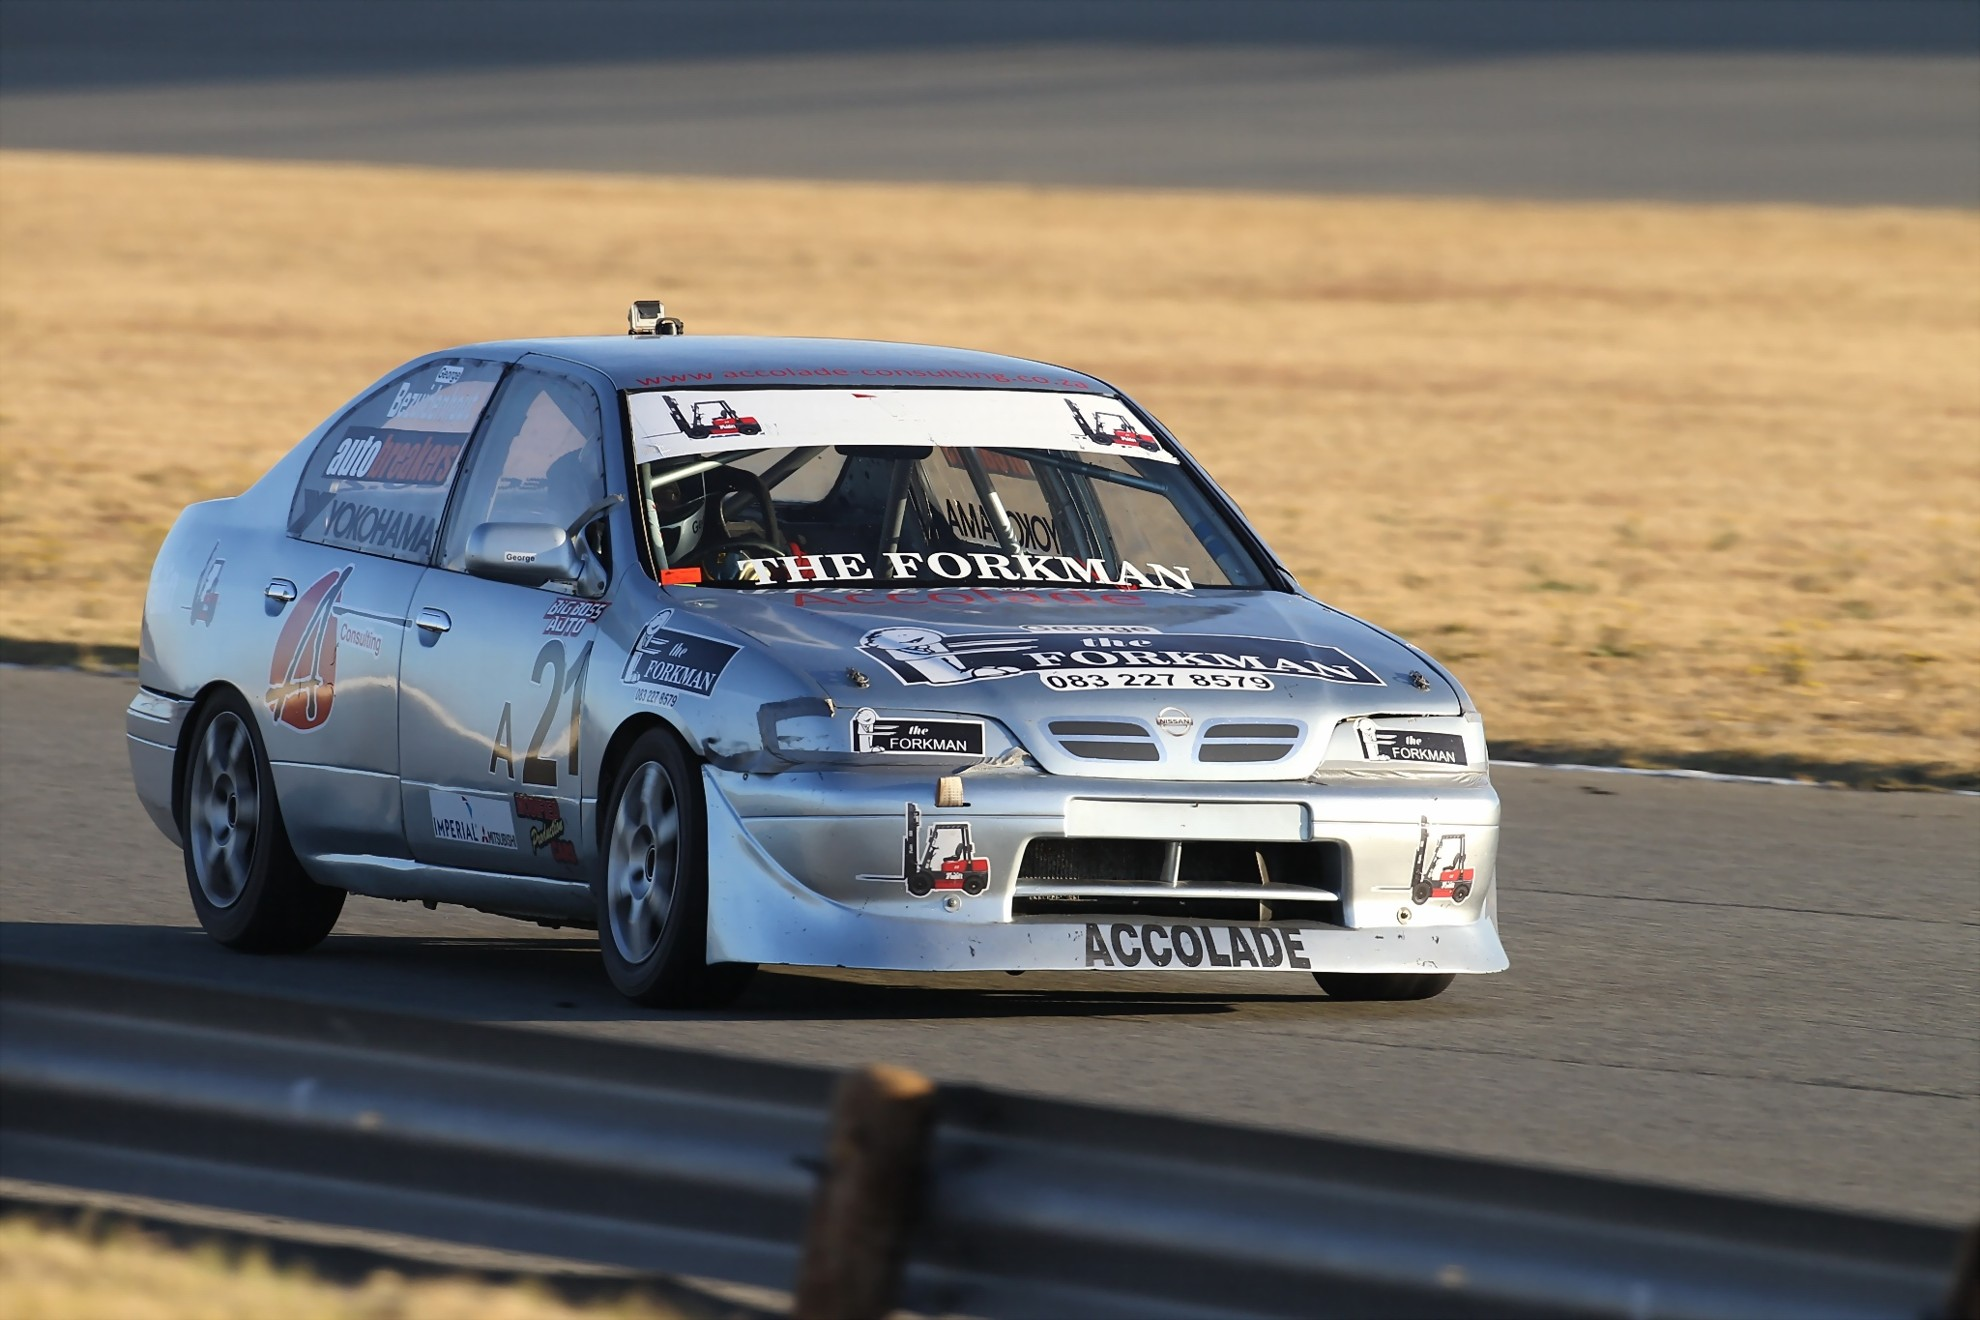 Free State Racing